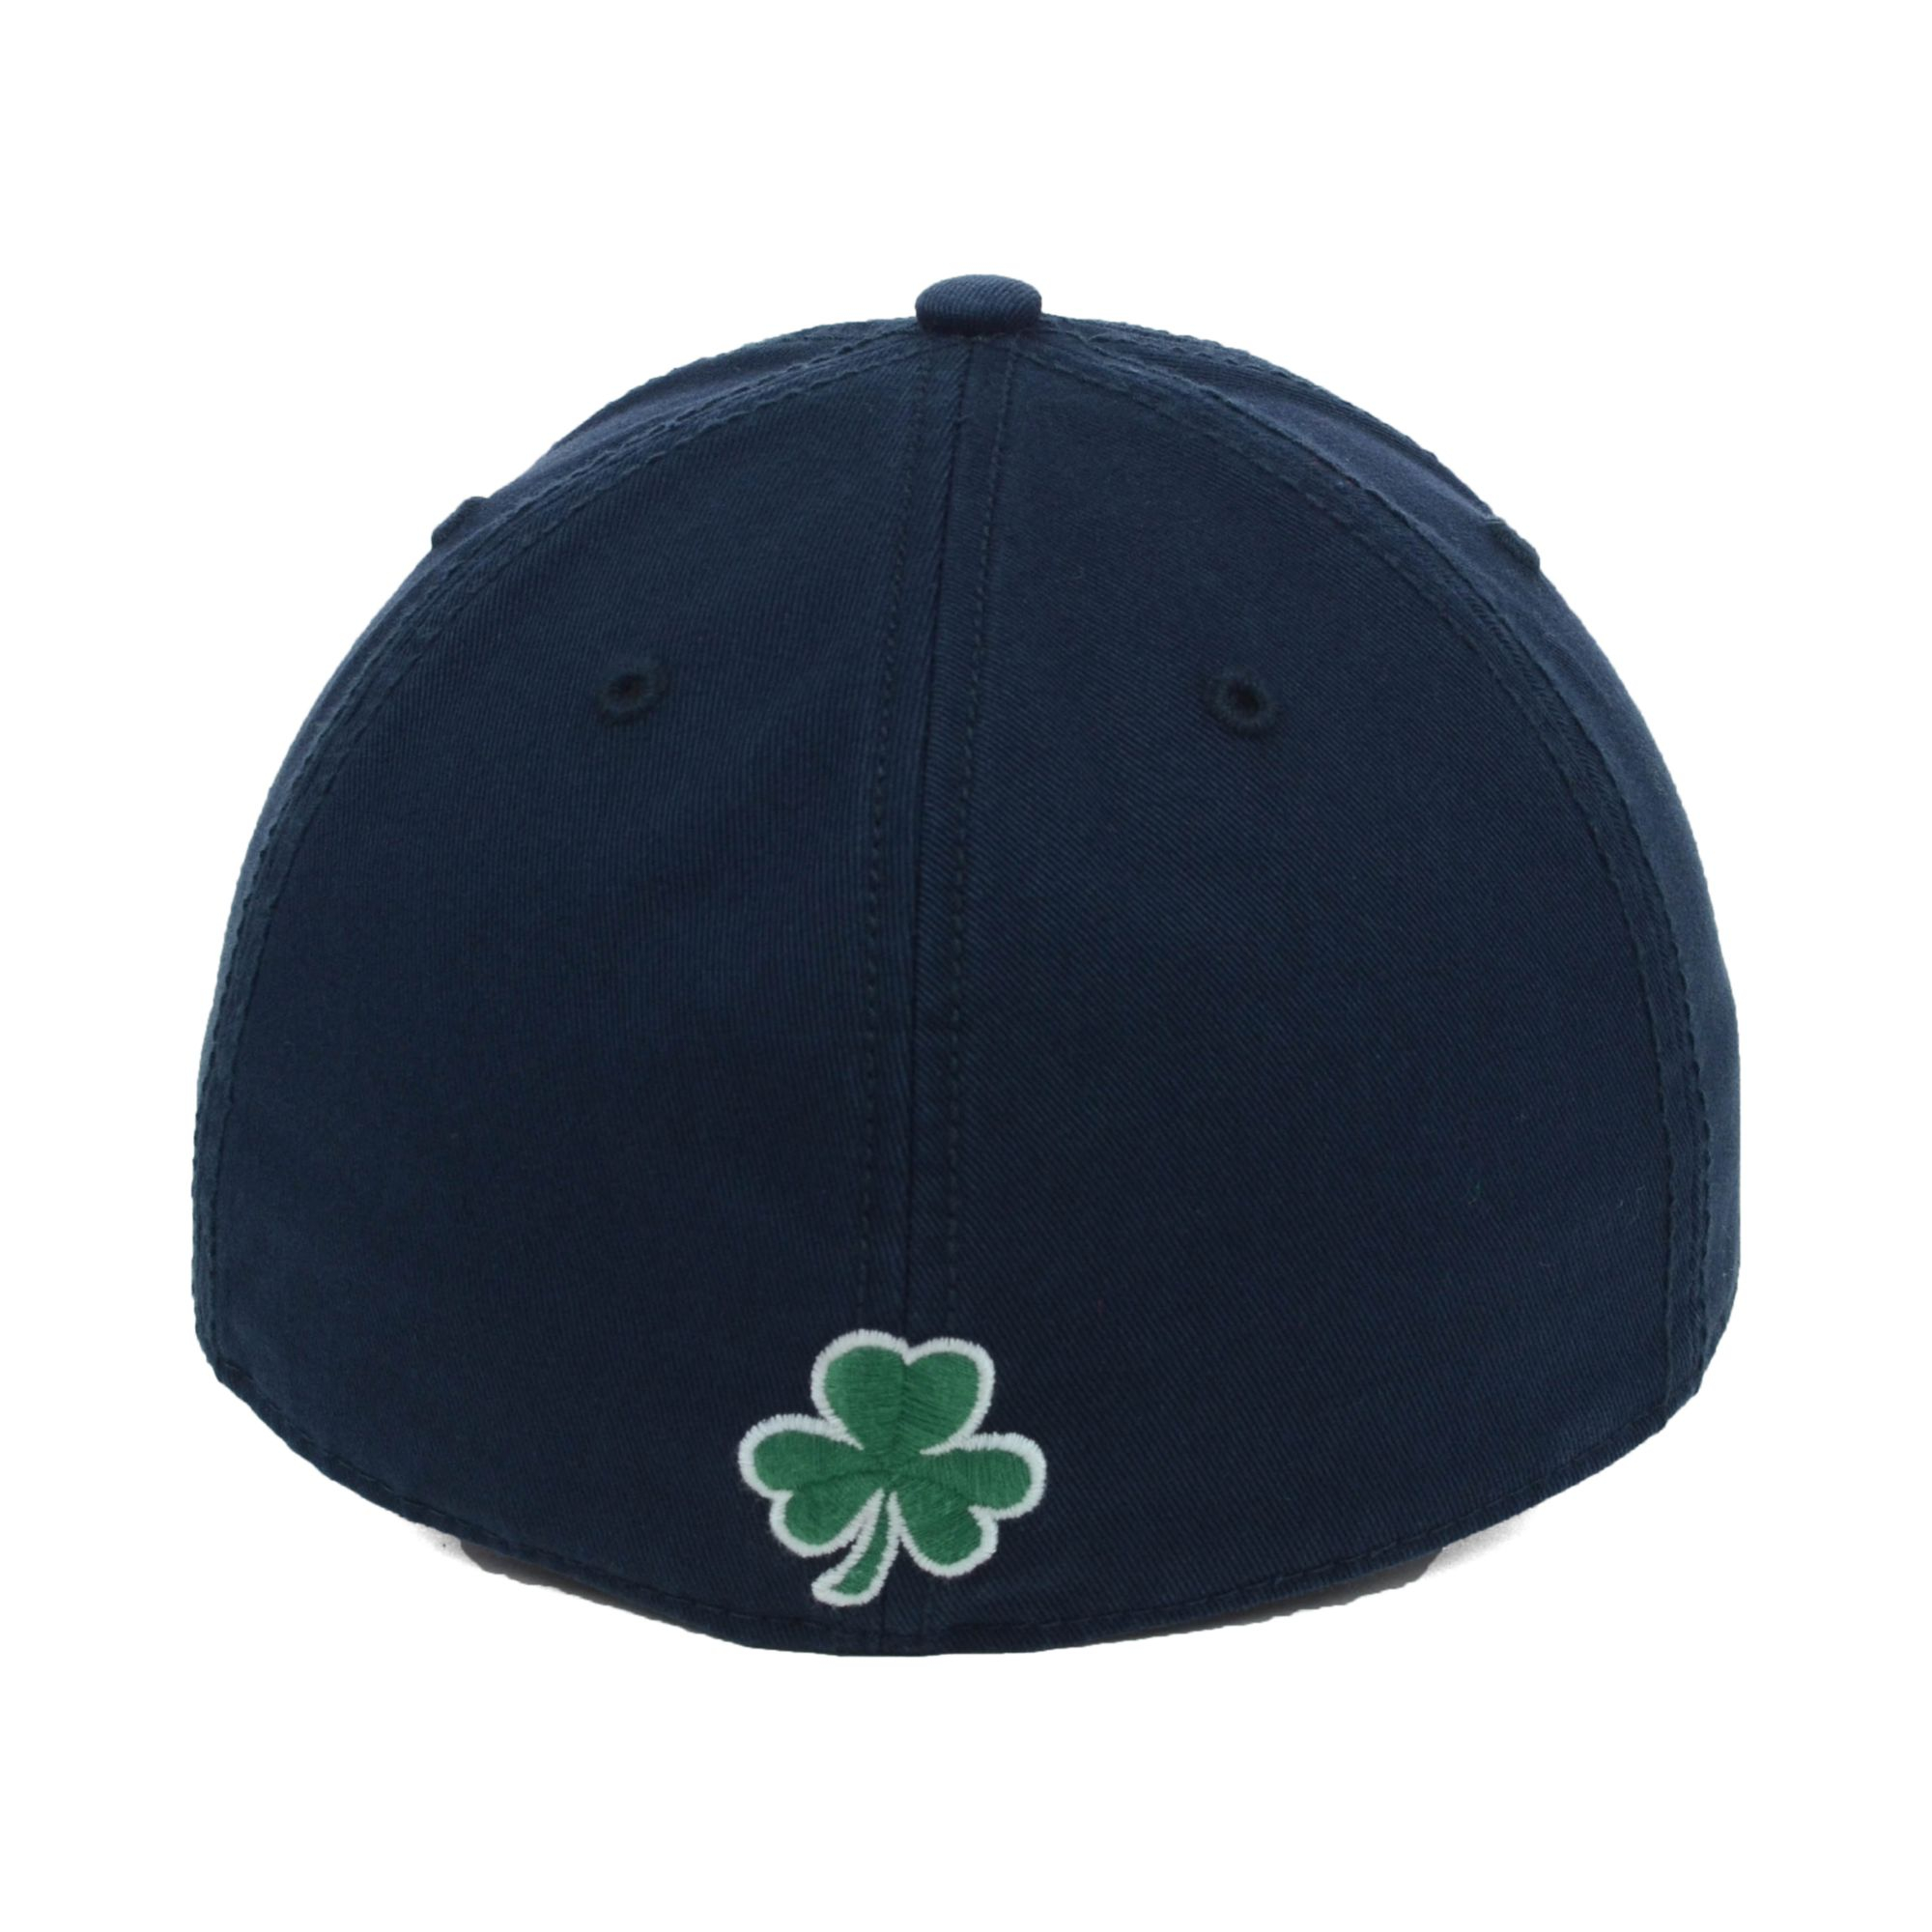 7d285080cff83 ... franchise cap e8d82 b977b ireland lyst 47 brand new york mets mlb  dublin cap in blue for men 7357d ee7c7 ...